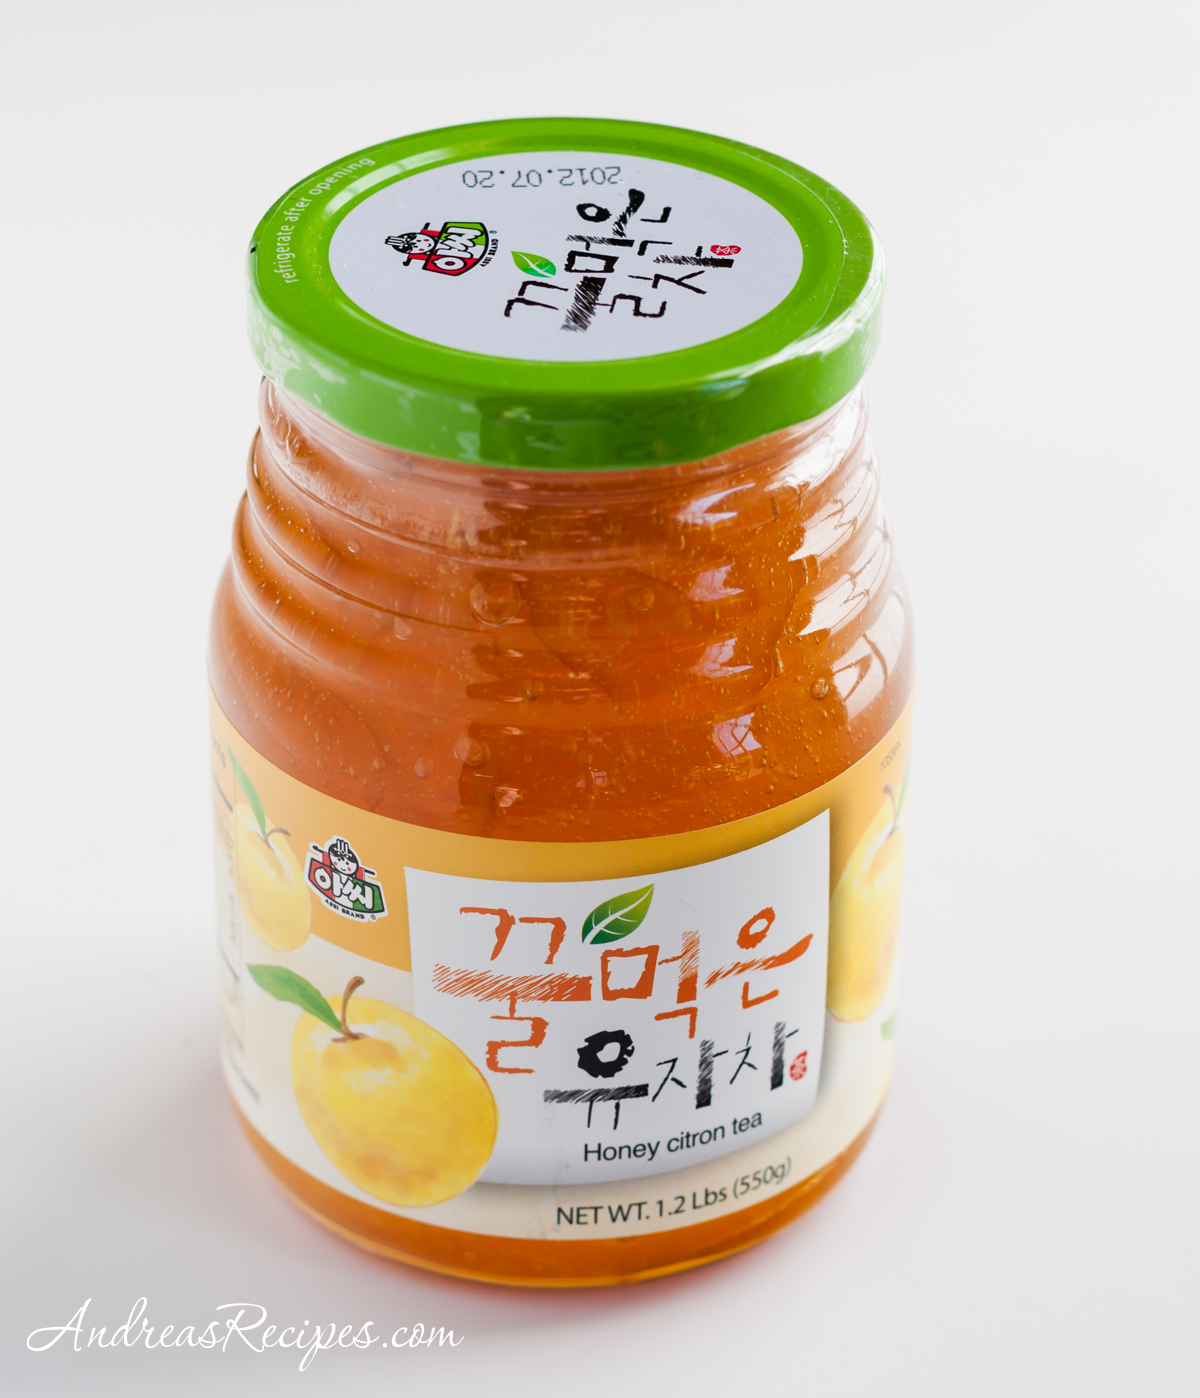 Jar of Korean citron tea - Andrea Meyers